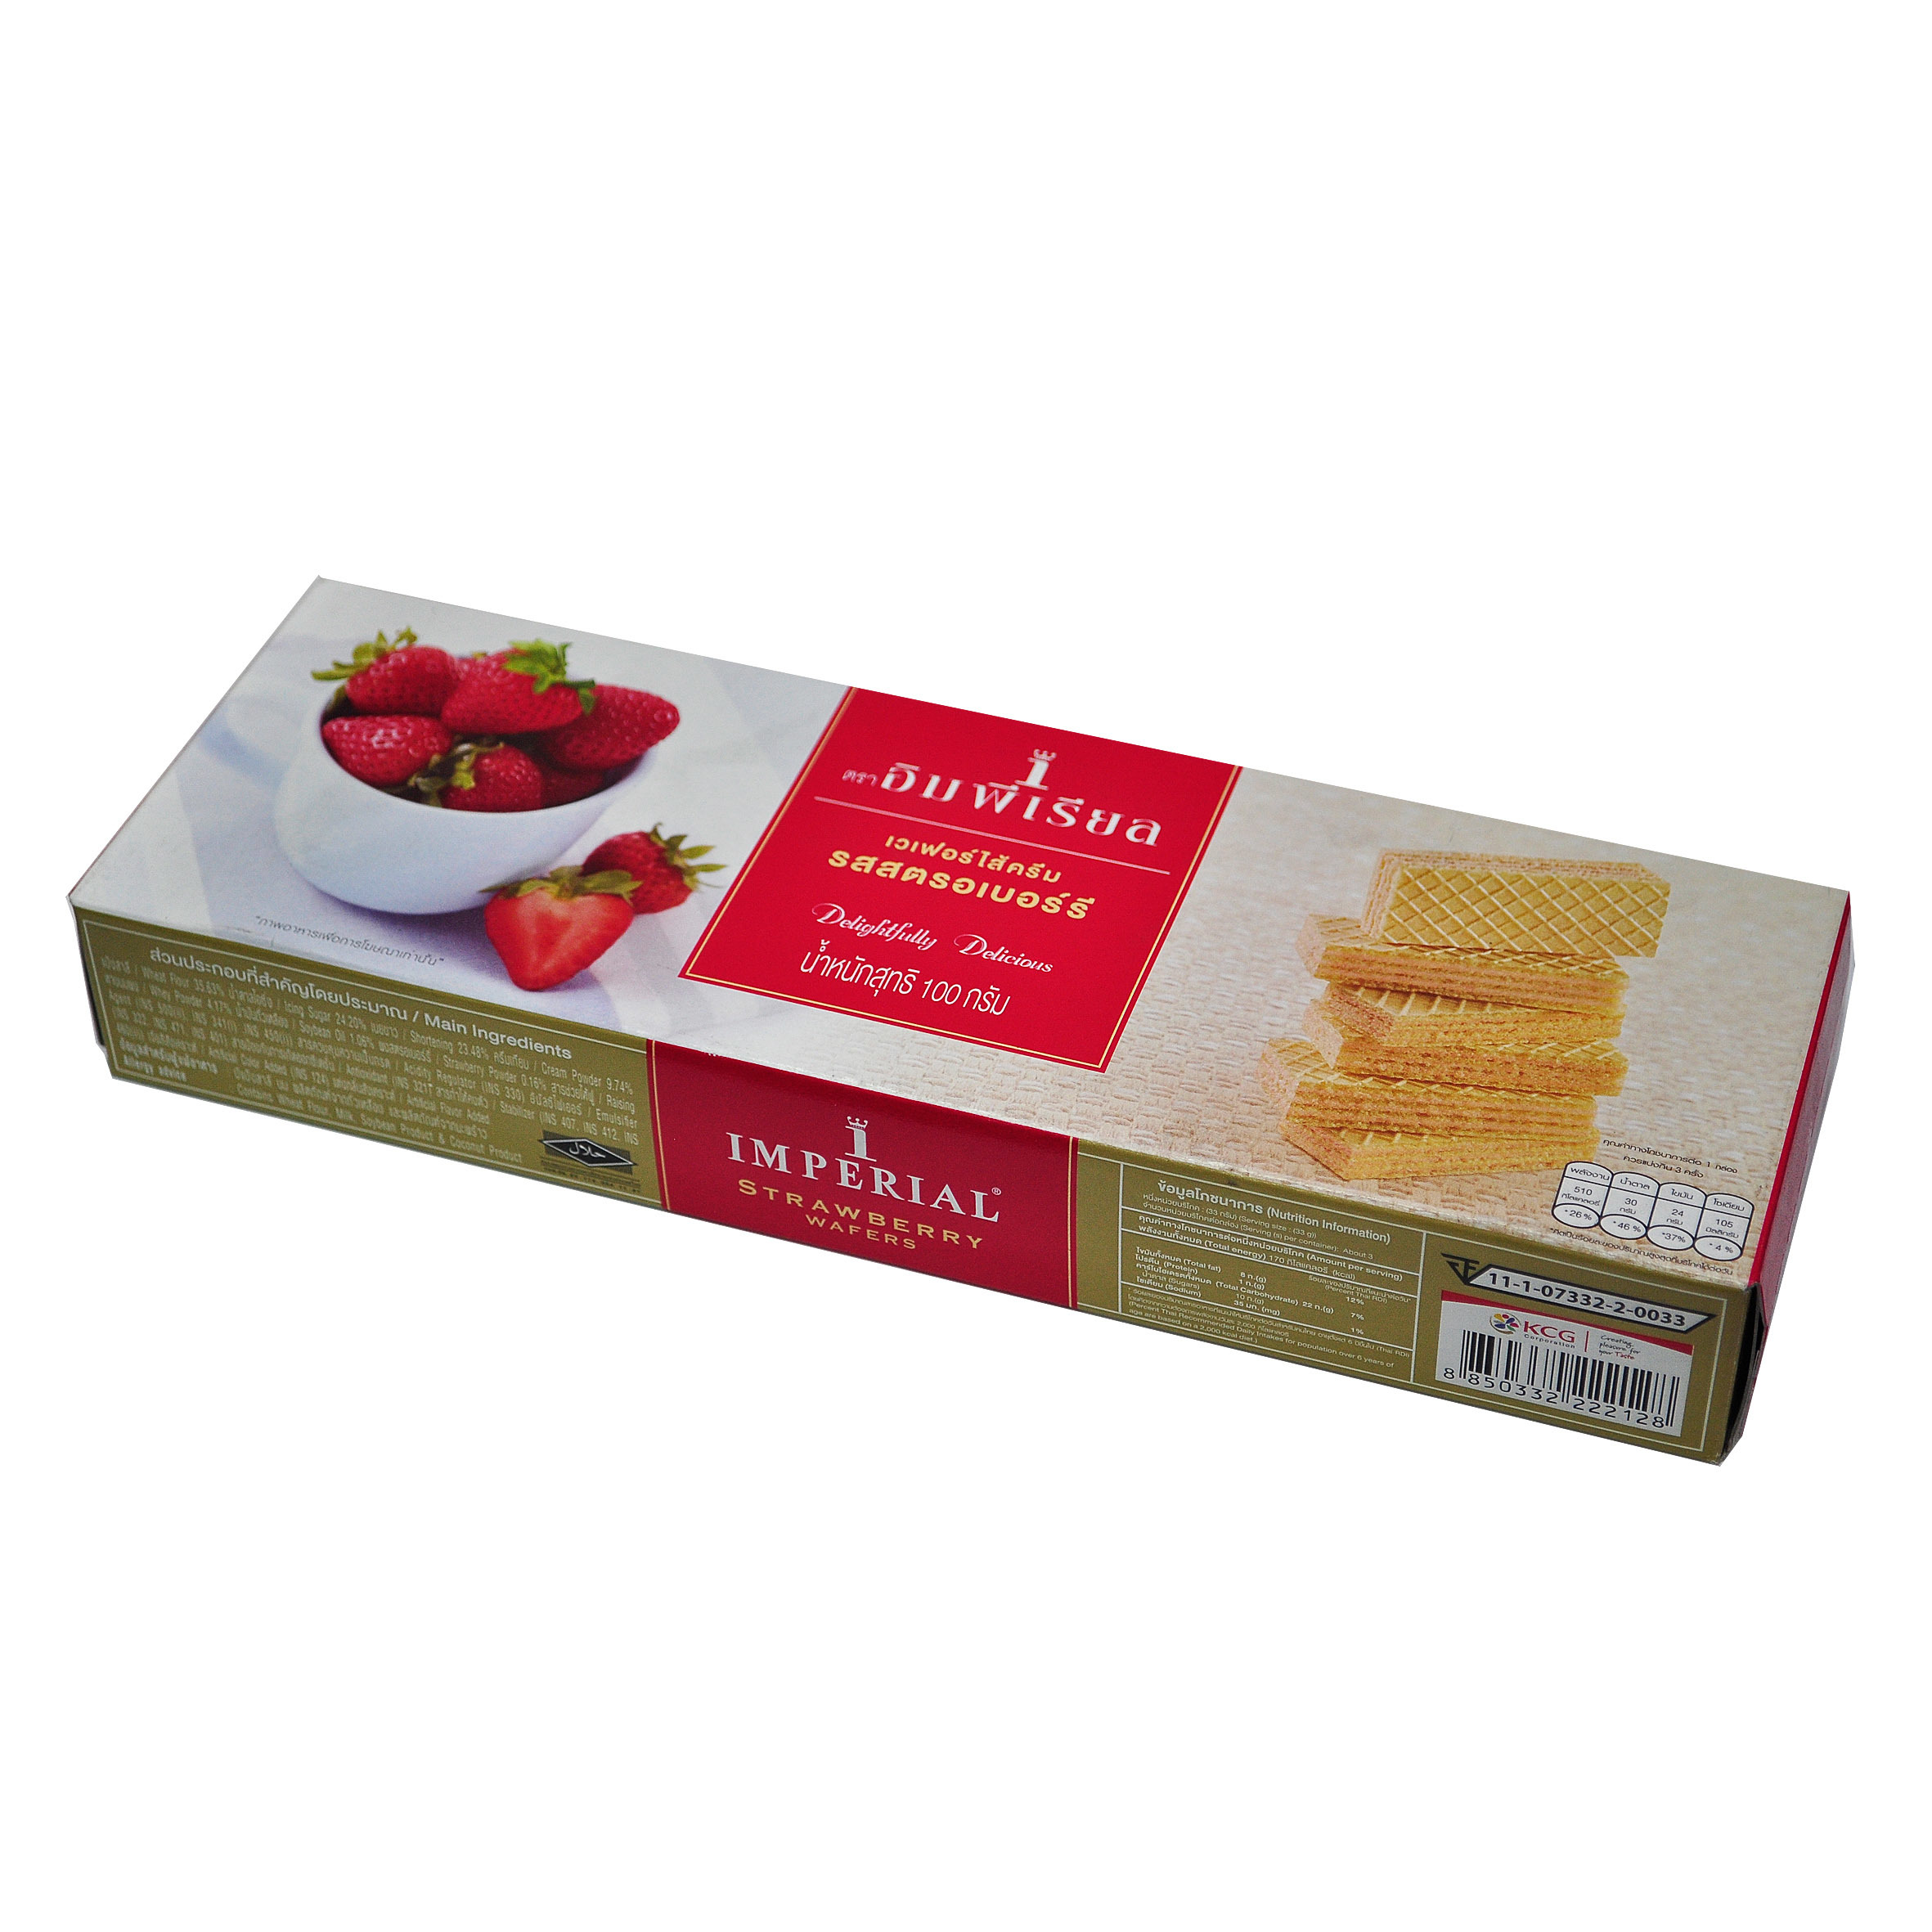 Imperial Strawberry Wafer Front Thai.jpg